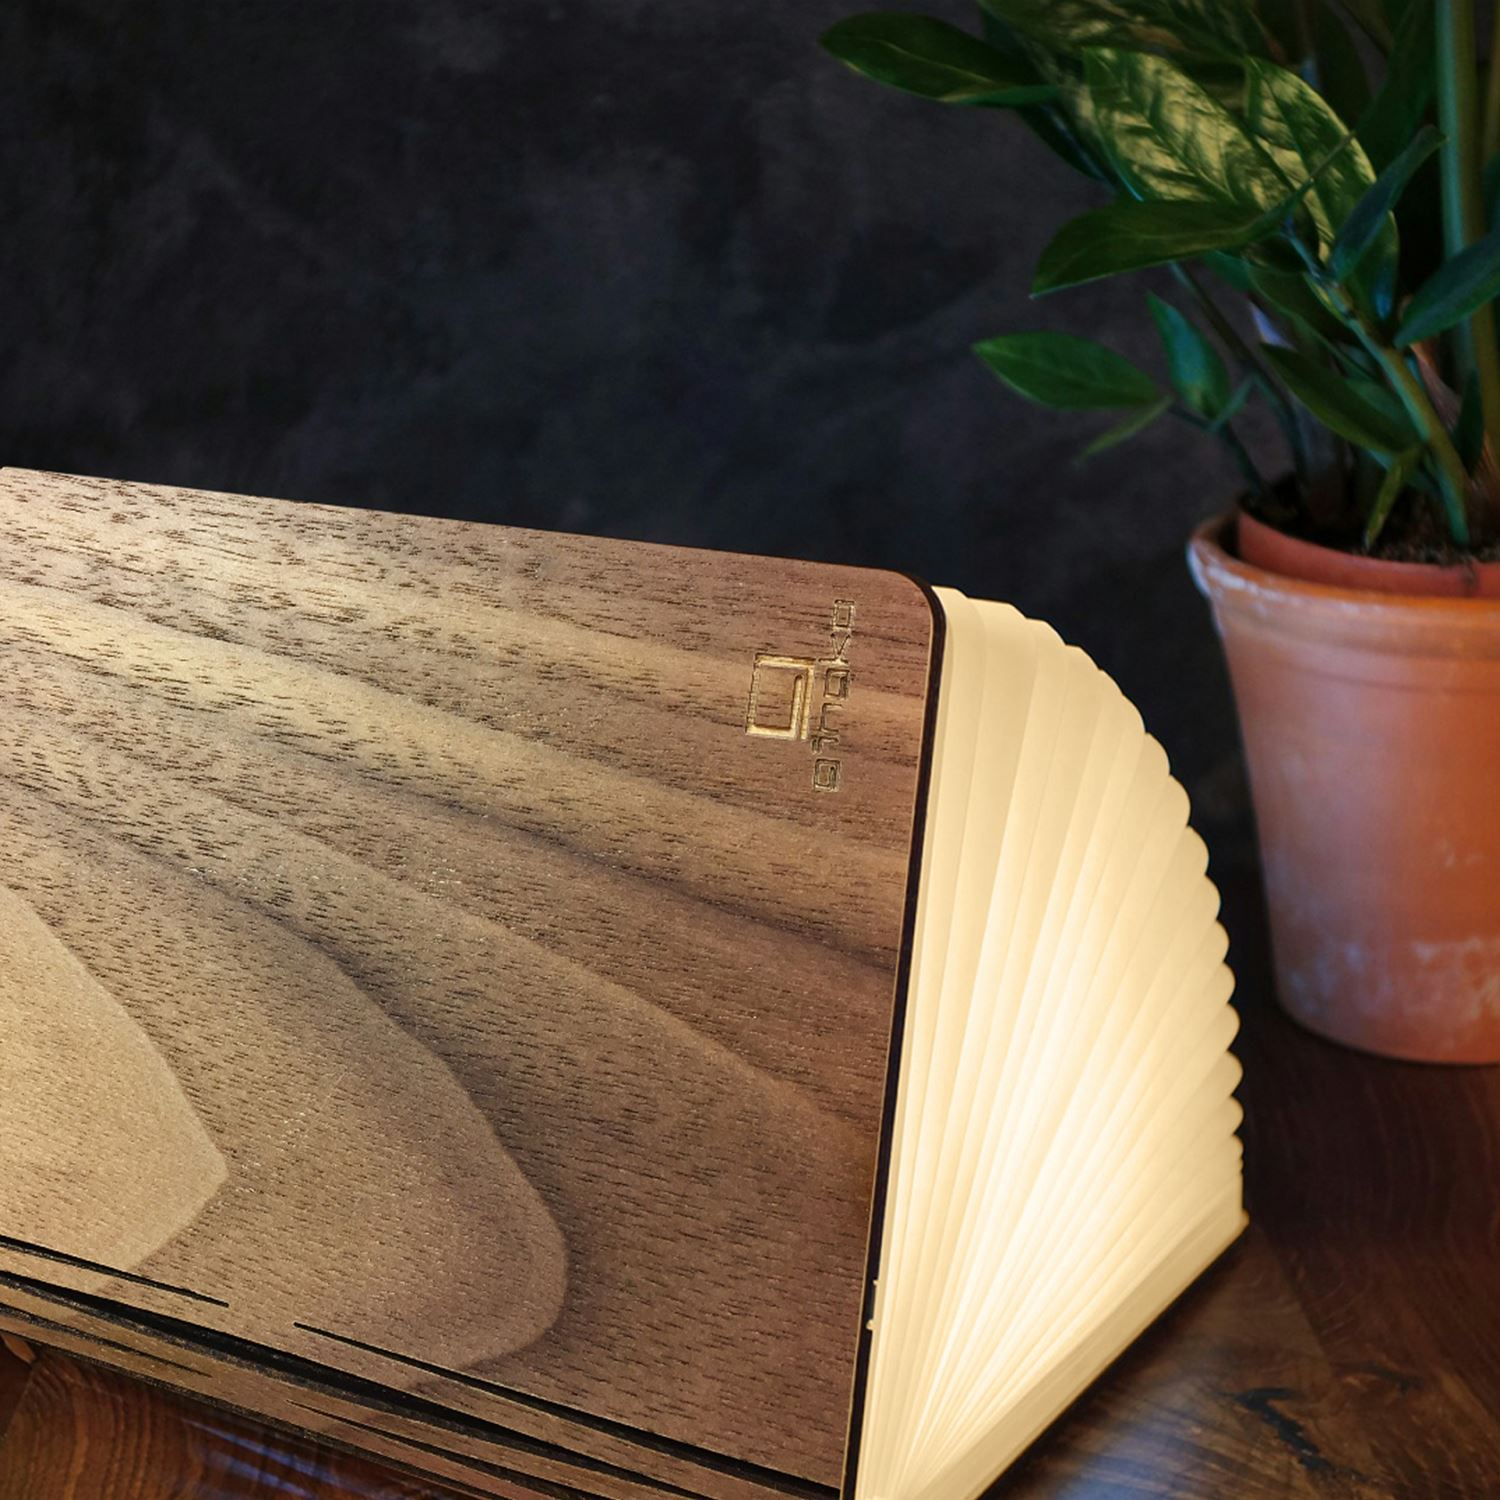 LED-Wood-Leather-Effect-Book-Desk-Lamp-Gingko-USB-Rechargeable-360-Light miniatuur 30